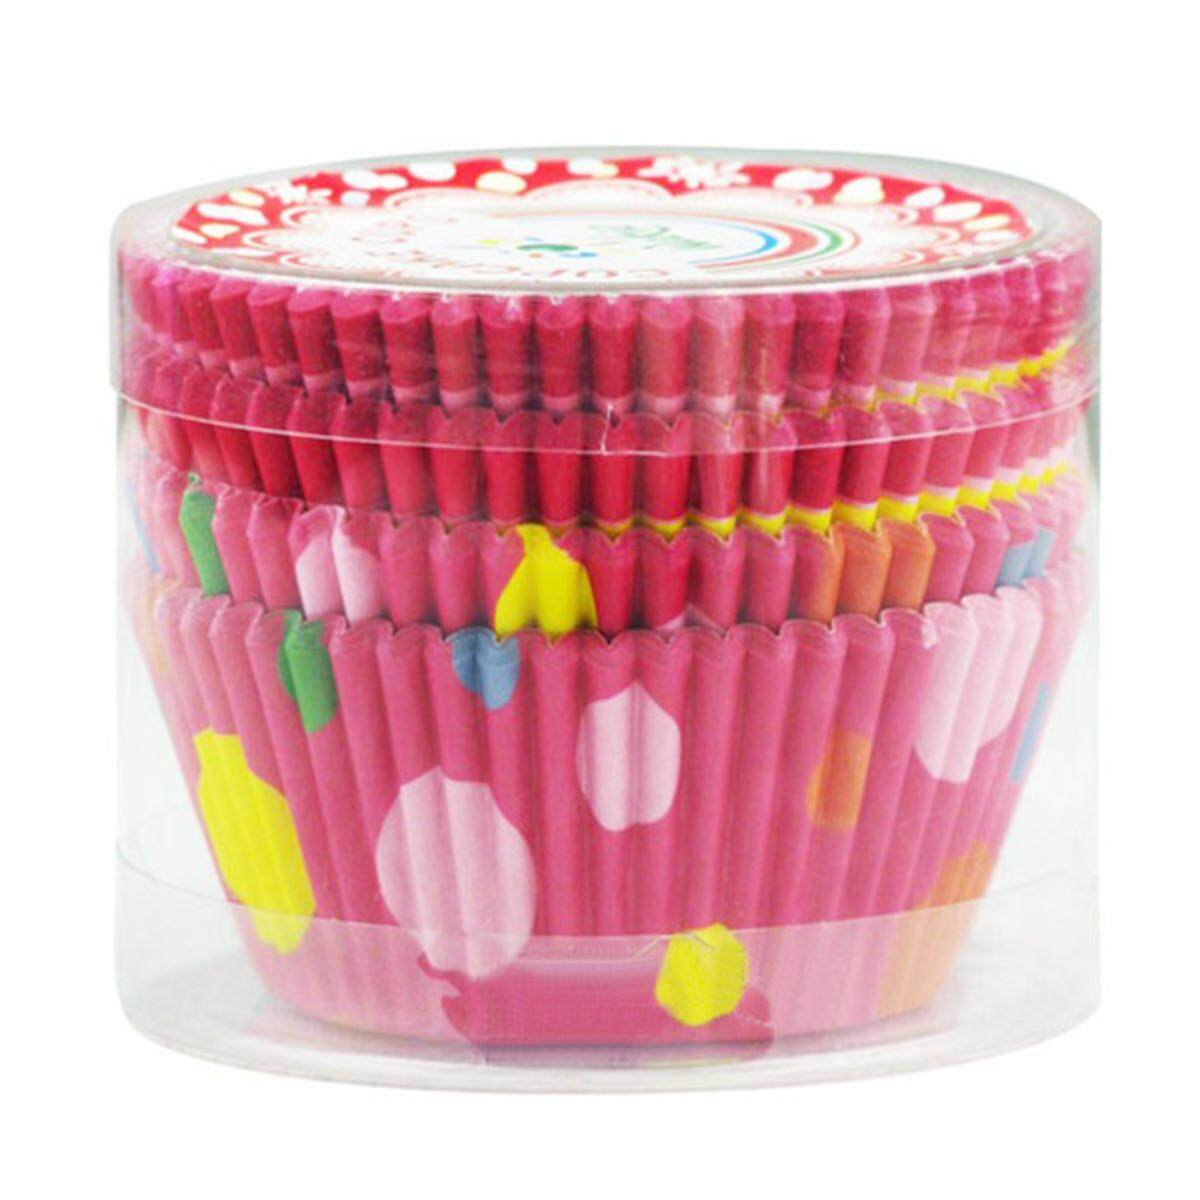 100pcs Colorful Circle Dot Chocolate Mold Cake Oiled Paper Cups By Glimmer.